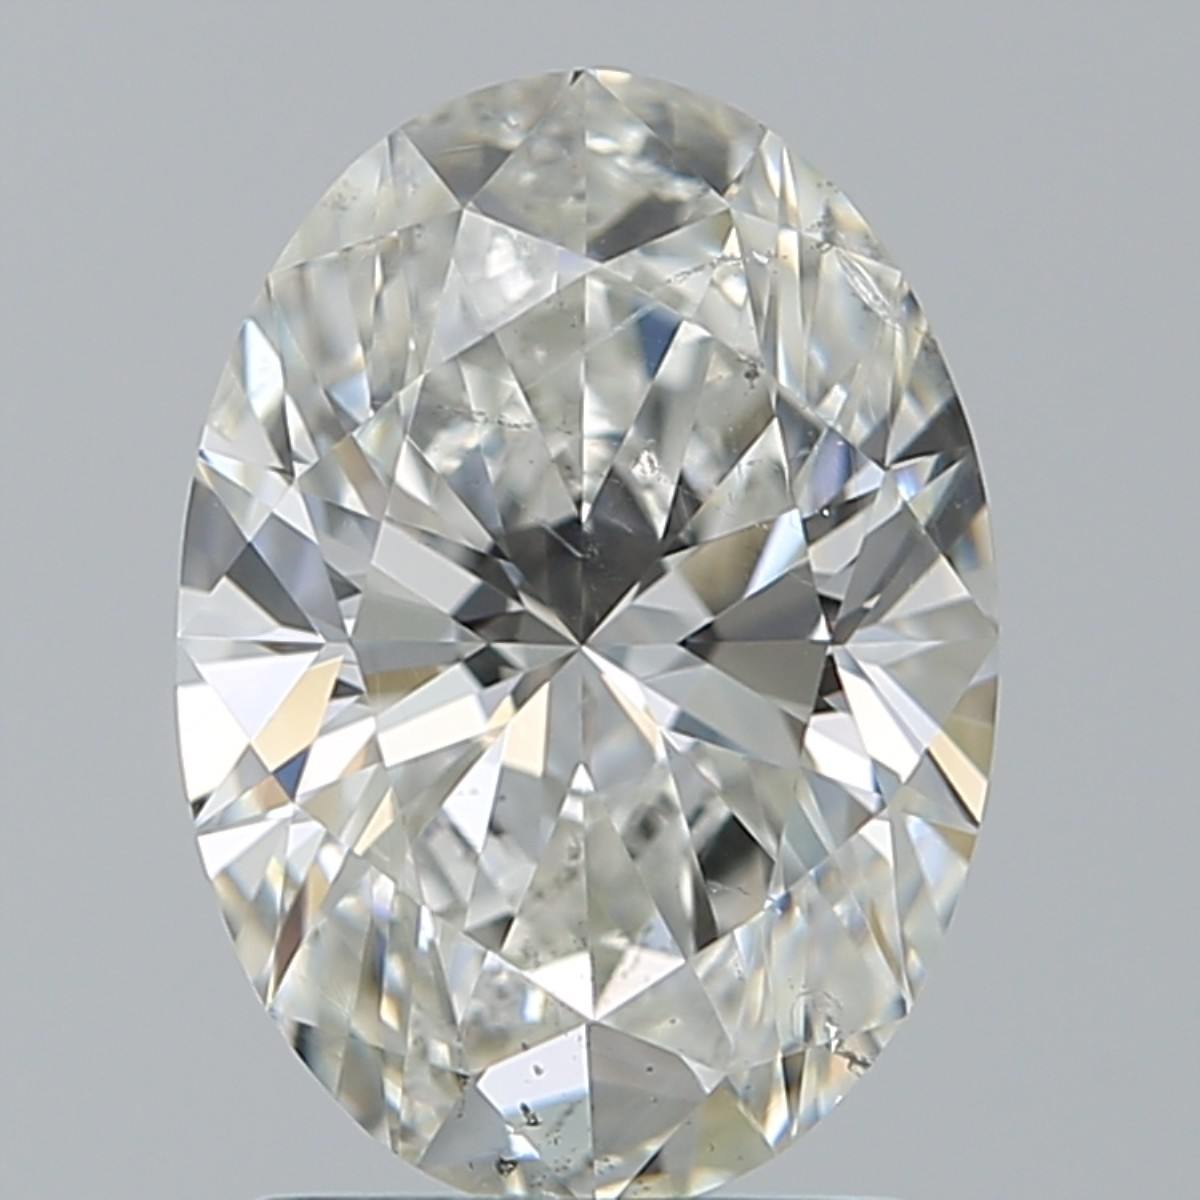 1.71 Carat Oval Diamond (H/SI1)